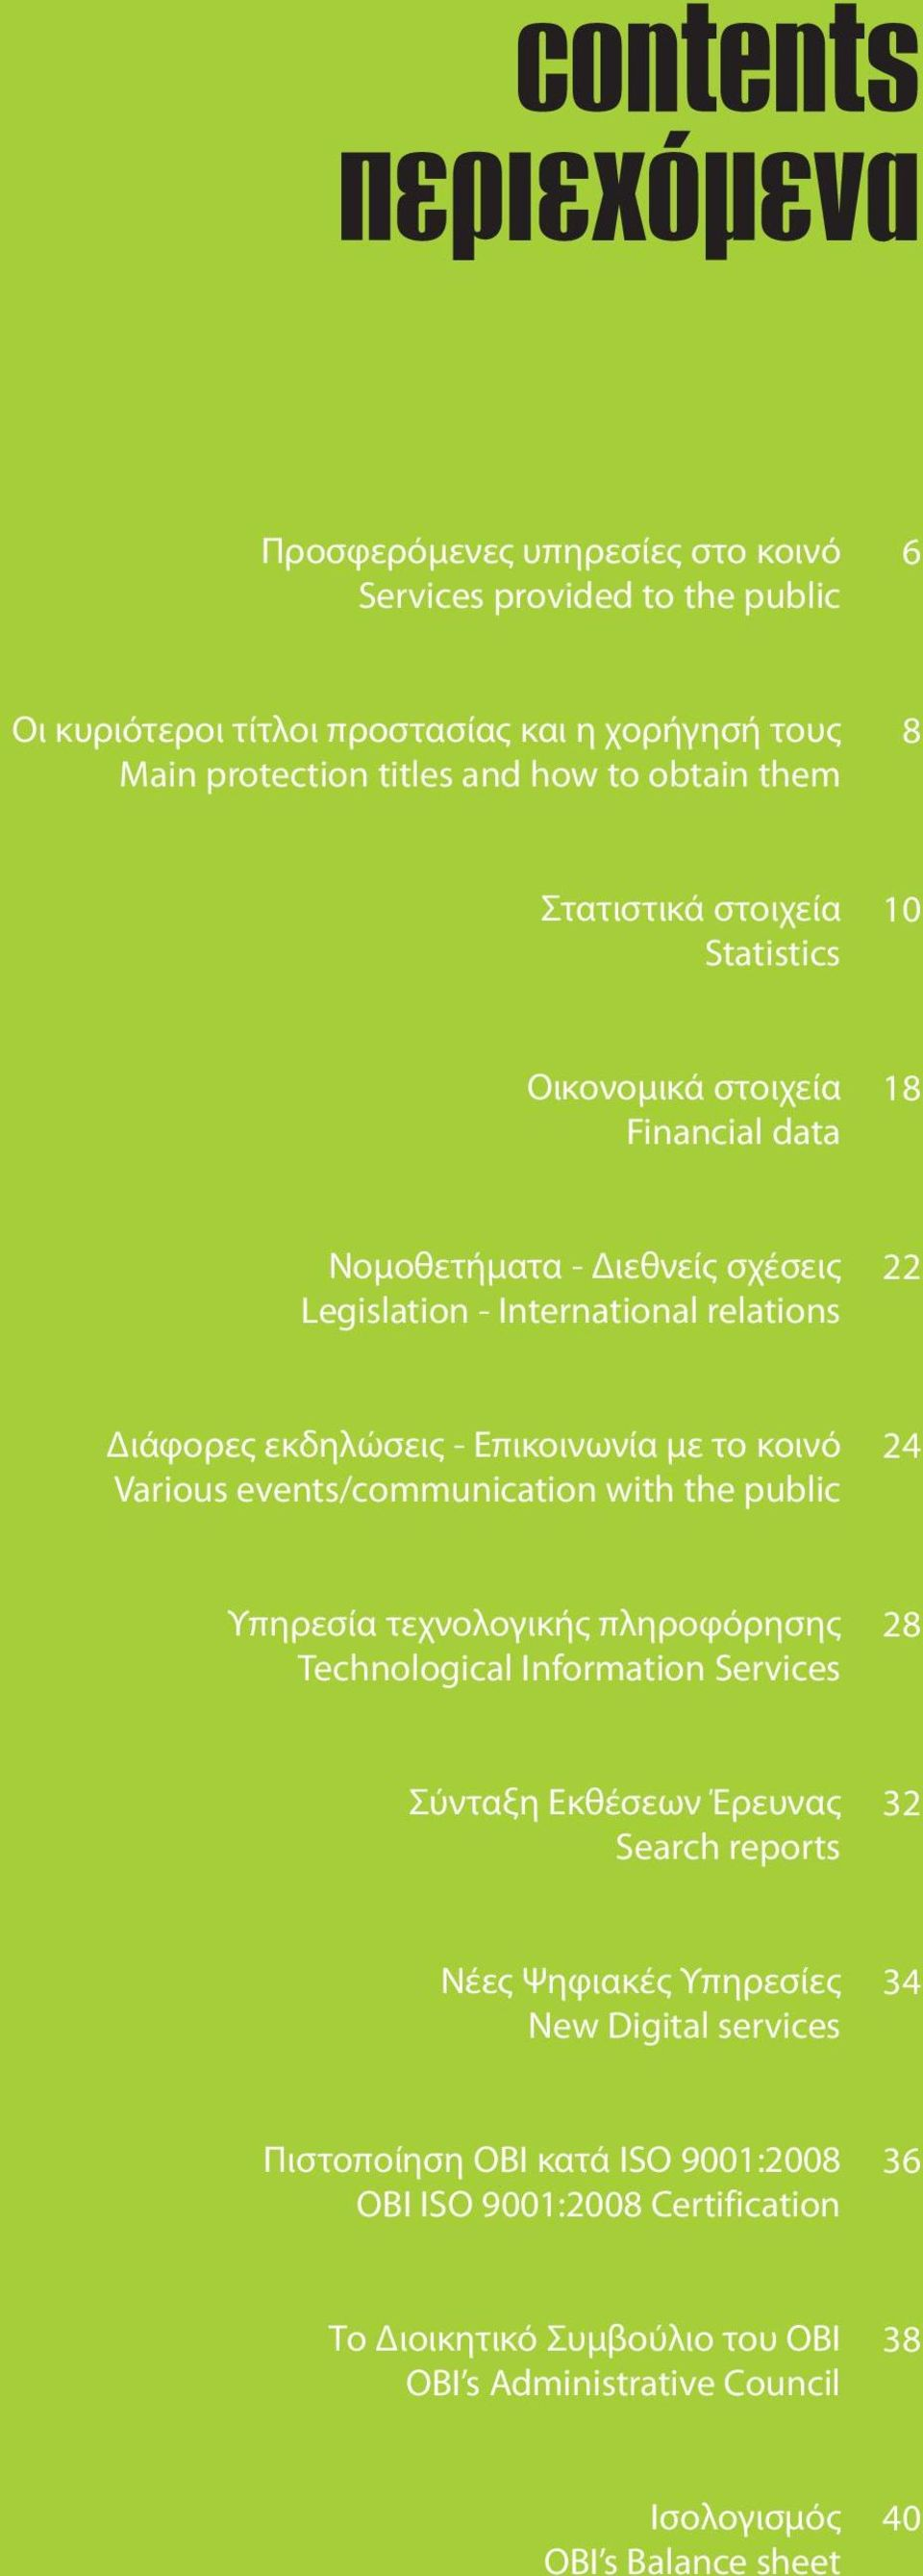 Various events/communication with the public 24 Υπηρεσία τεχνολογικής πληροφόρησης Technological Information Services 28 Σύνταξη Εκθέσεων Έρευνας Search reports 32 Νέες Ψηφιακές Υπηρεσίες